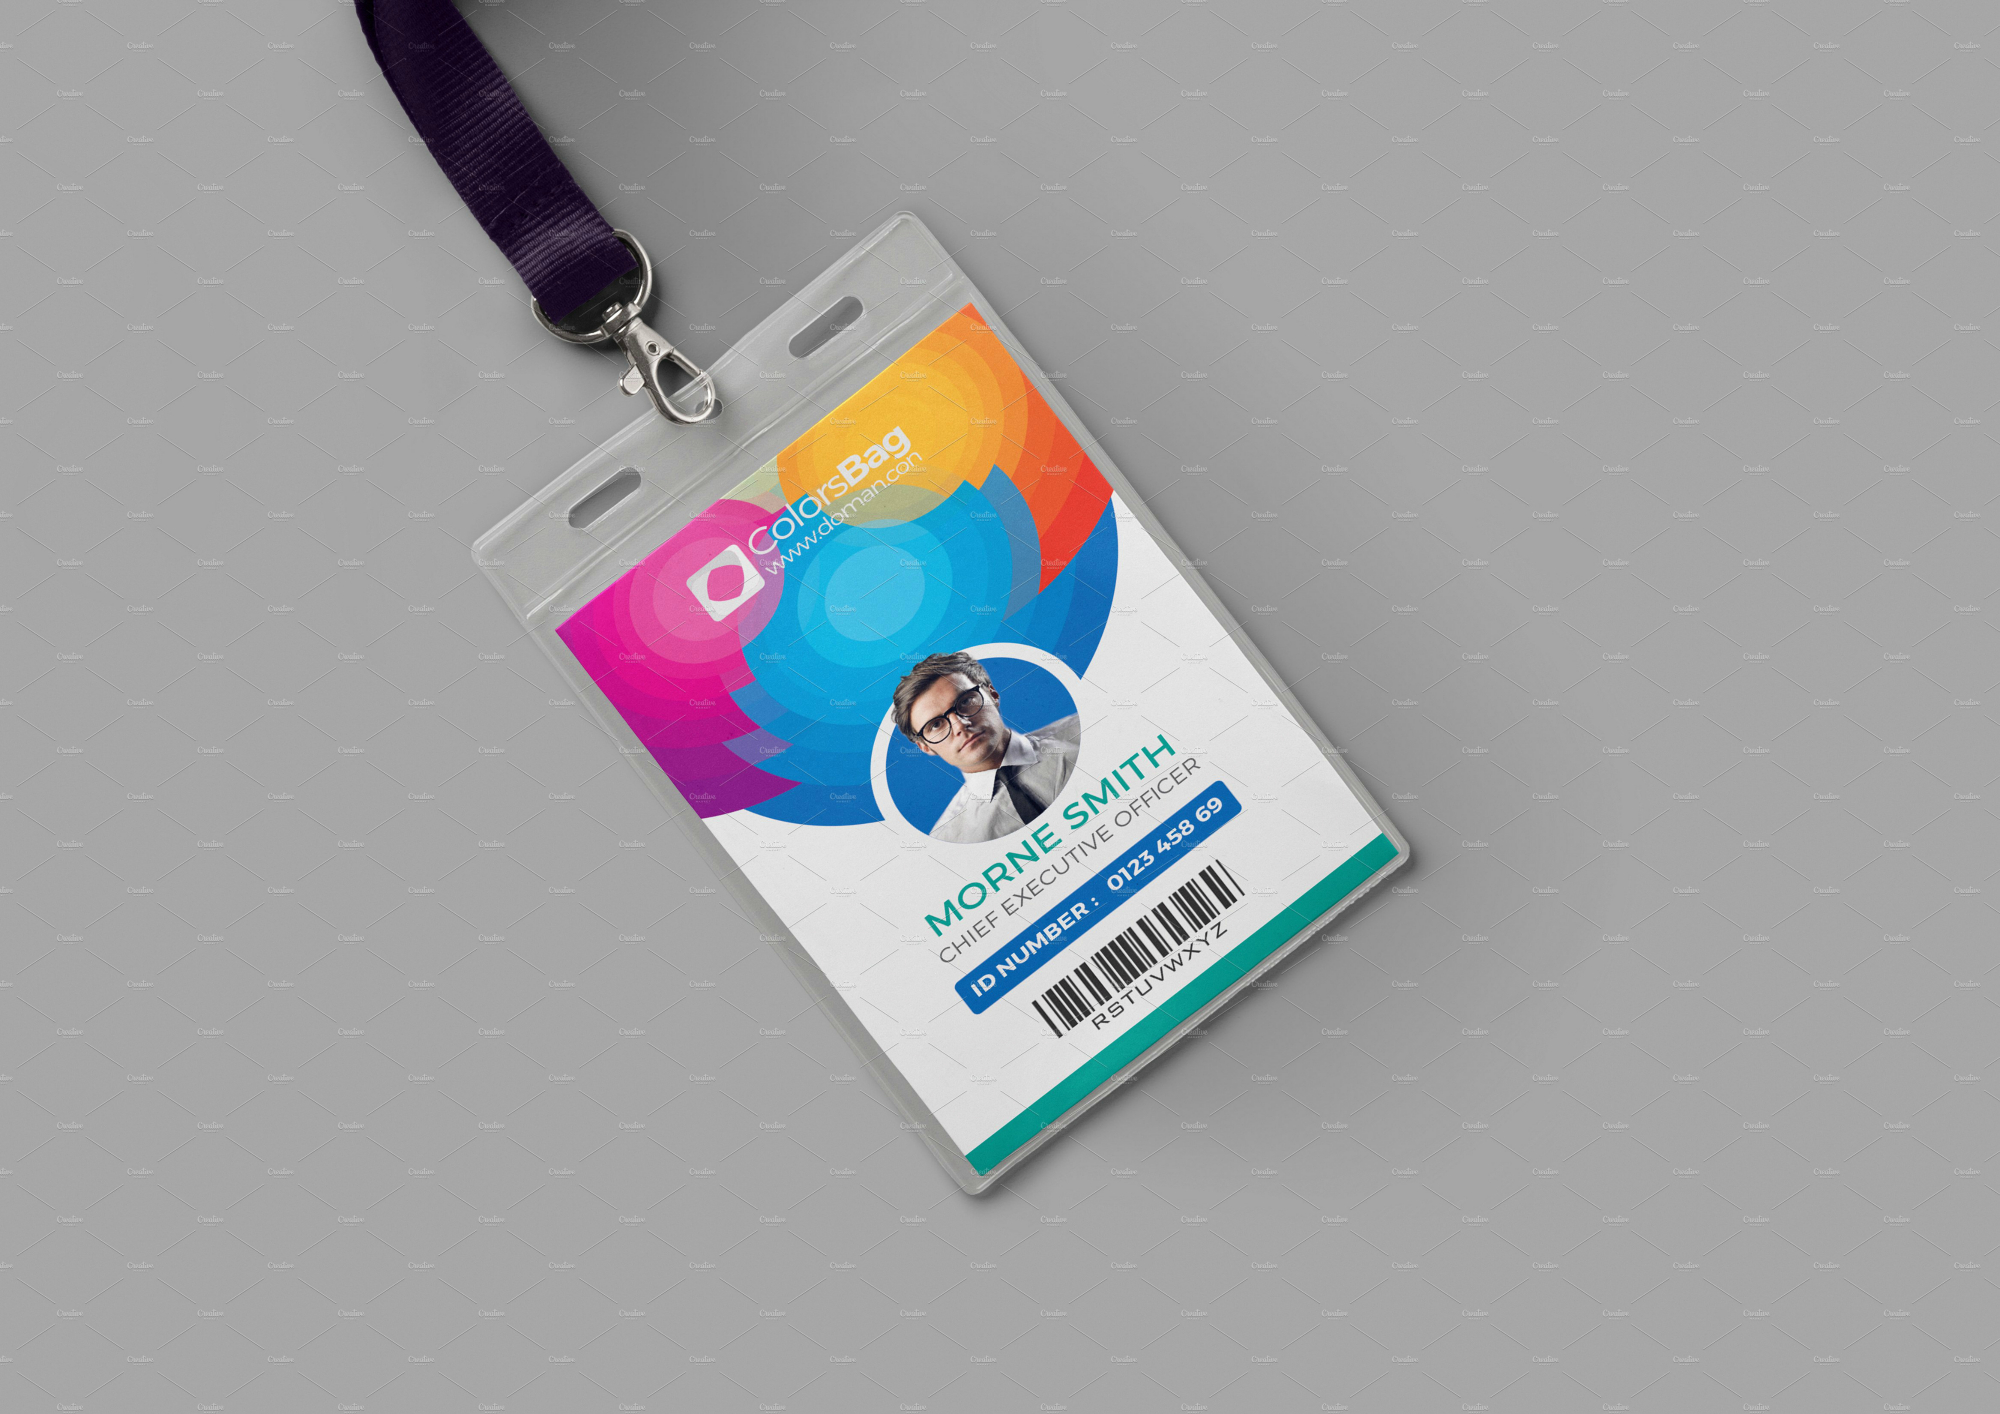 43+ Professional Id Card Designs - Psd, Eps, Ai, Word | Free Within Id Card Design Template Psd Free Download